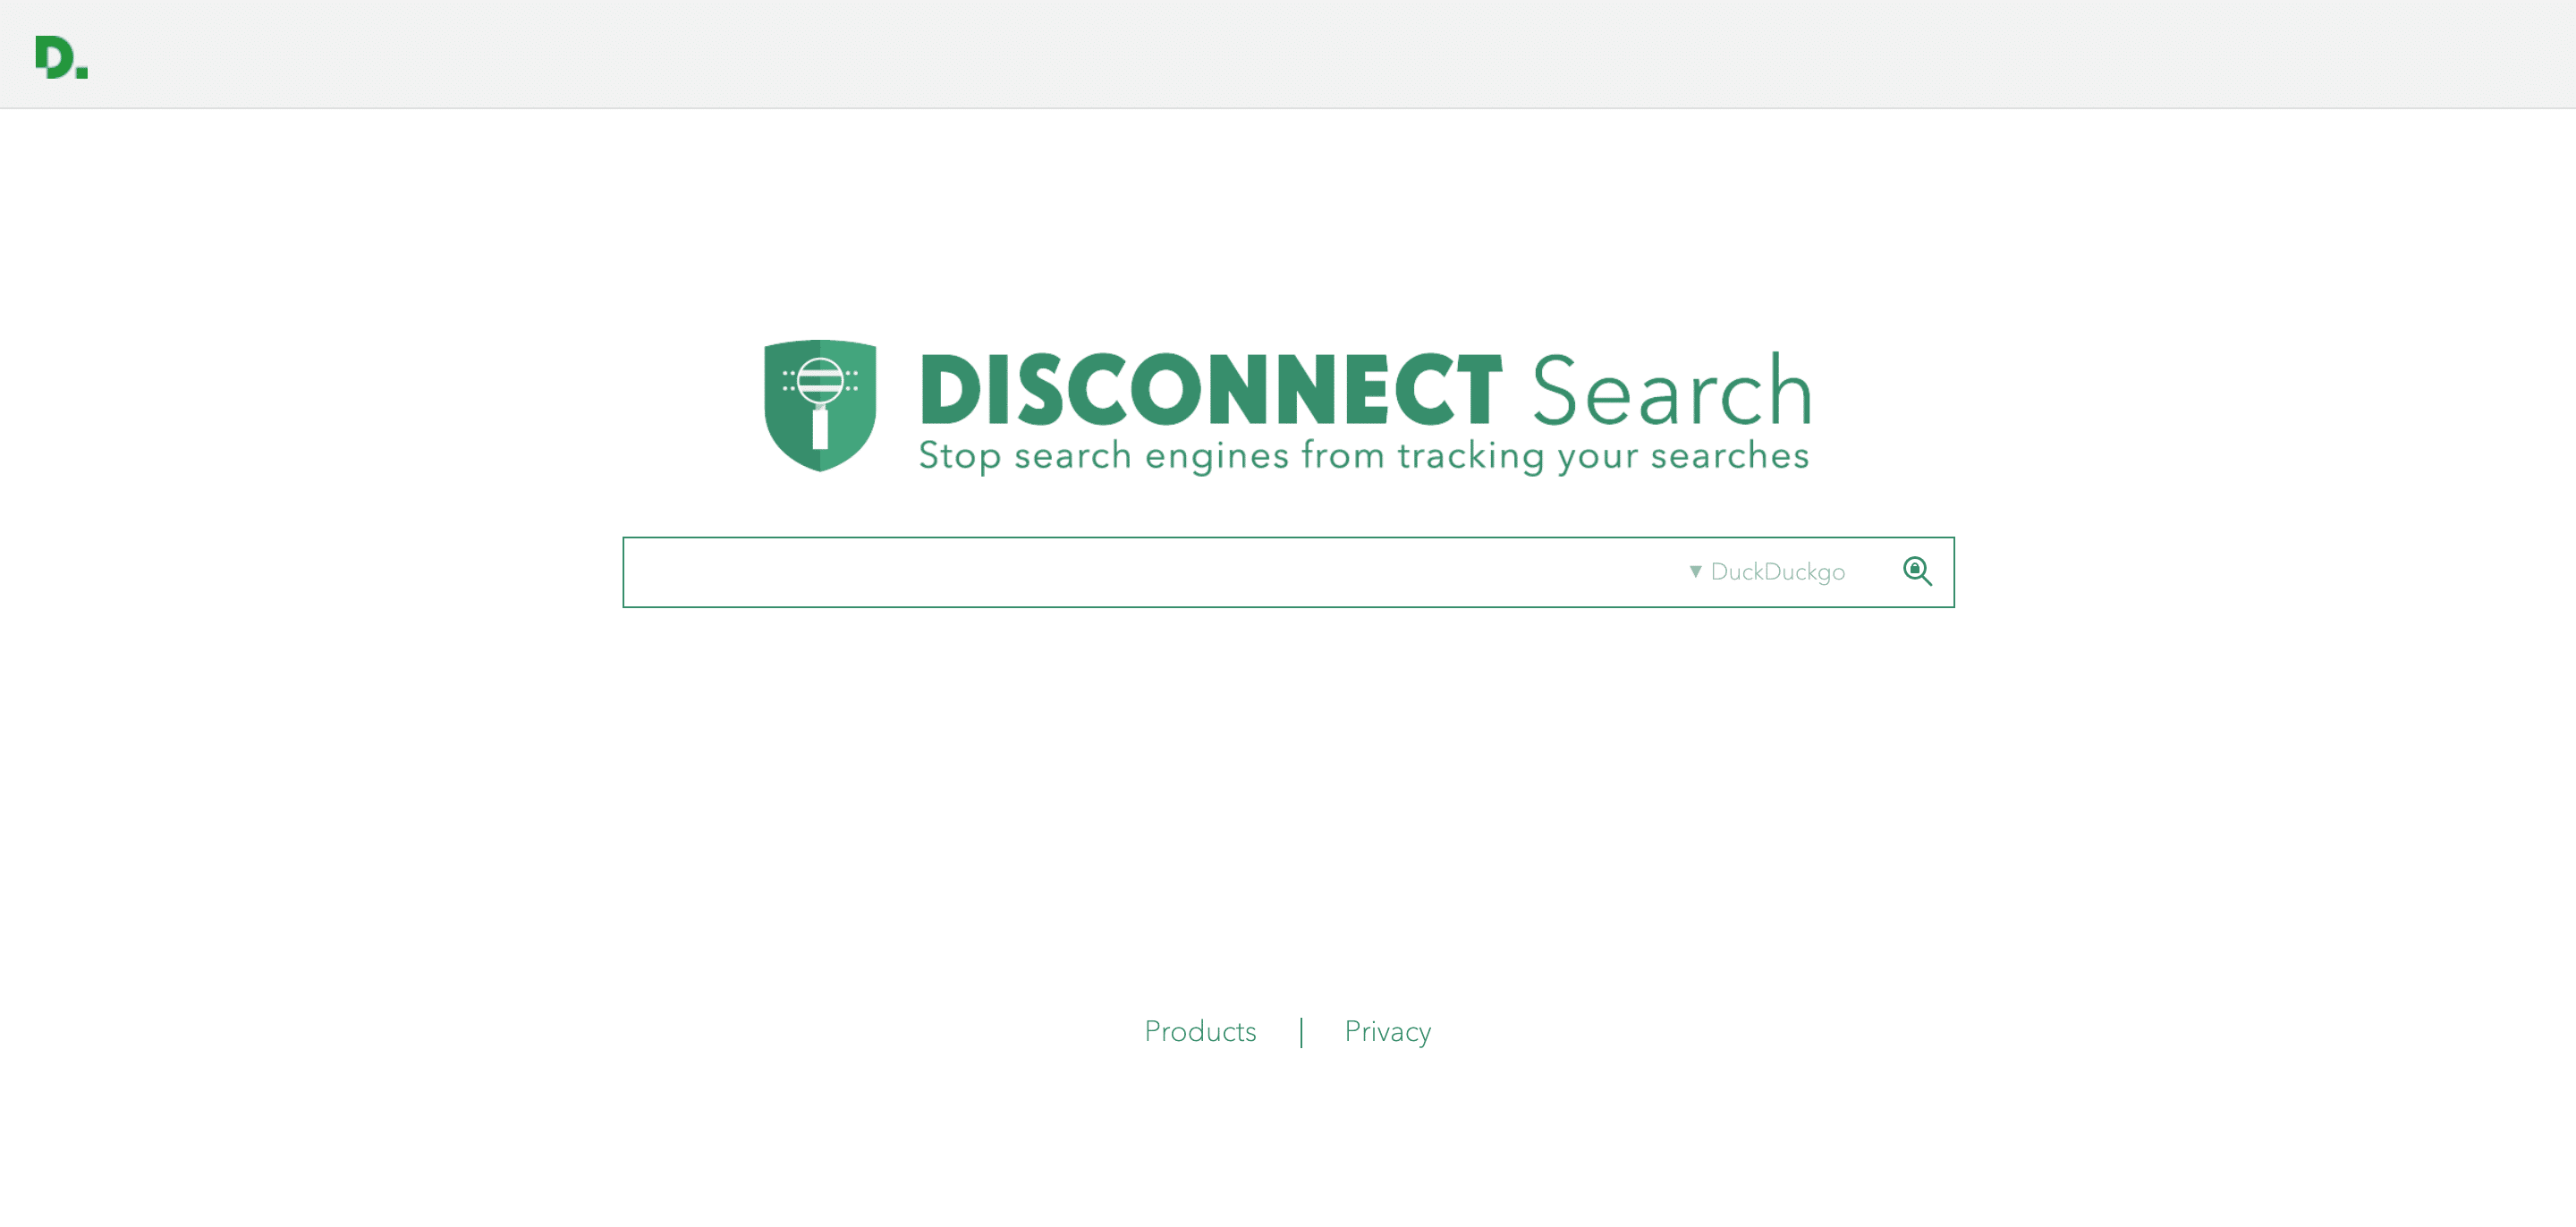 Disconnect search search engine